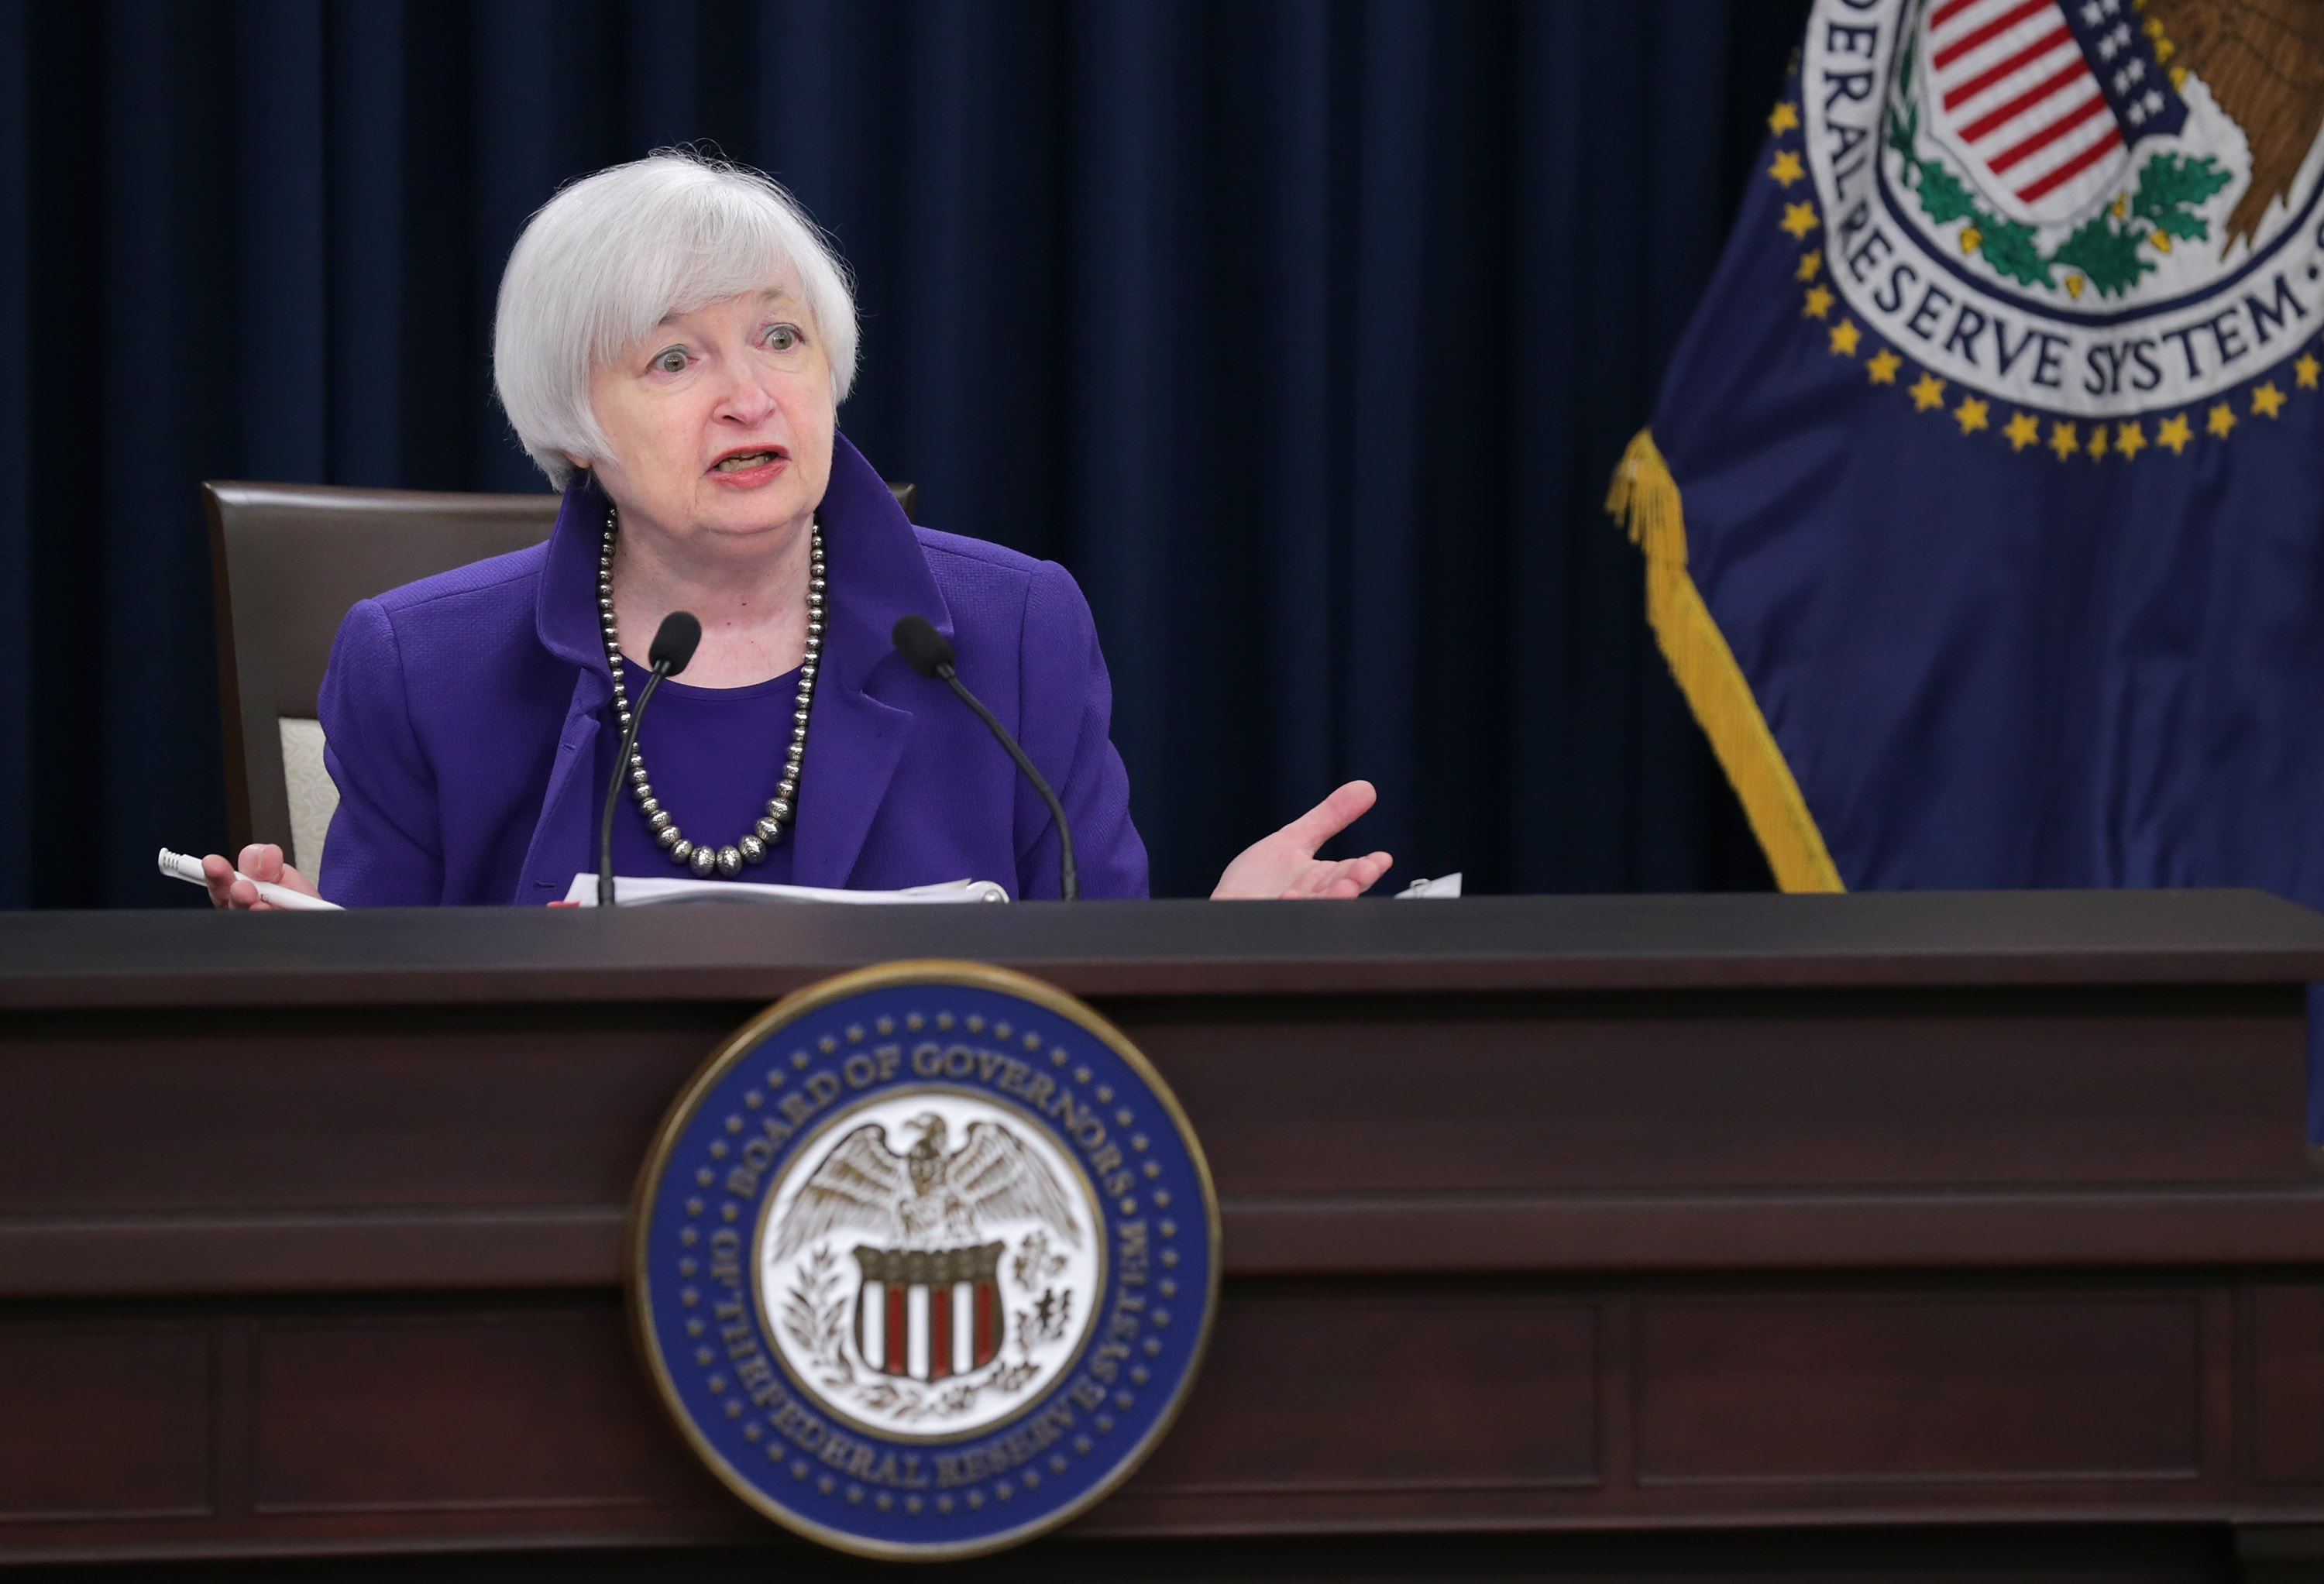 Janet Yellen Holds Press Conf. After Federal Reserve Meeting On Interest Rates